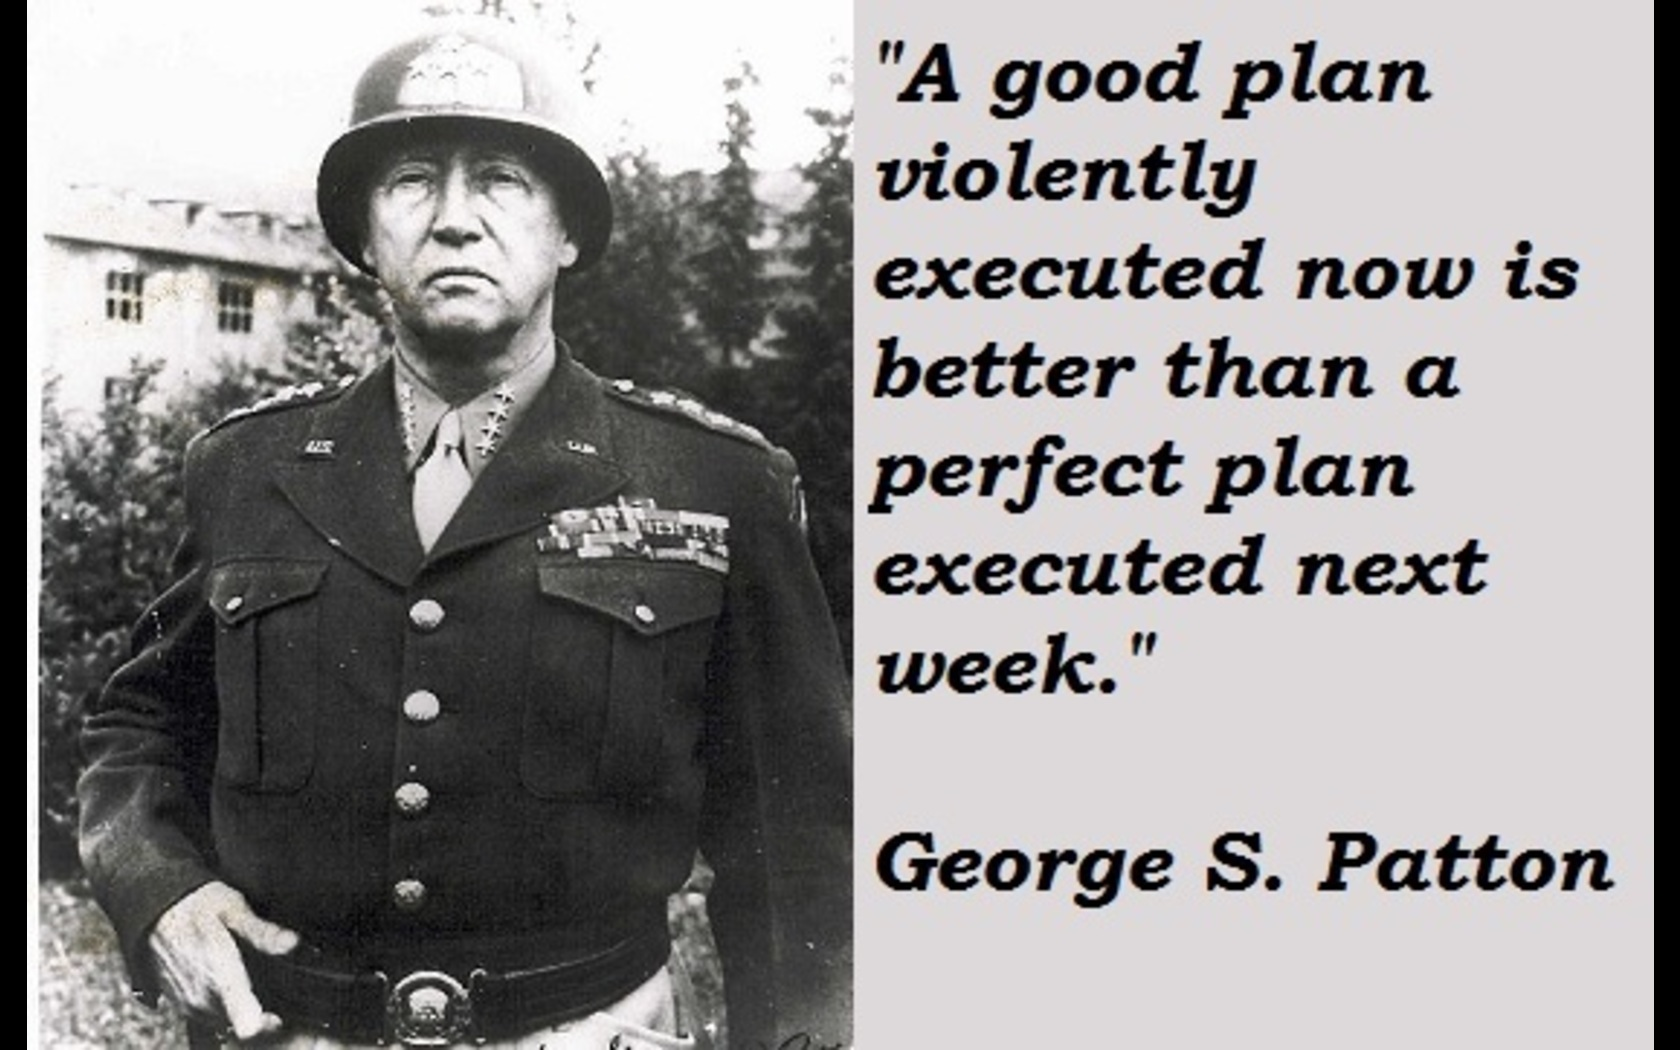 18391-george-s-patton-quotations-sayings-famous-quotes-of-wallpaper